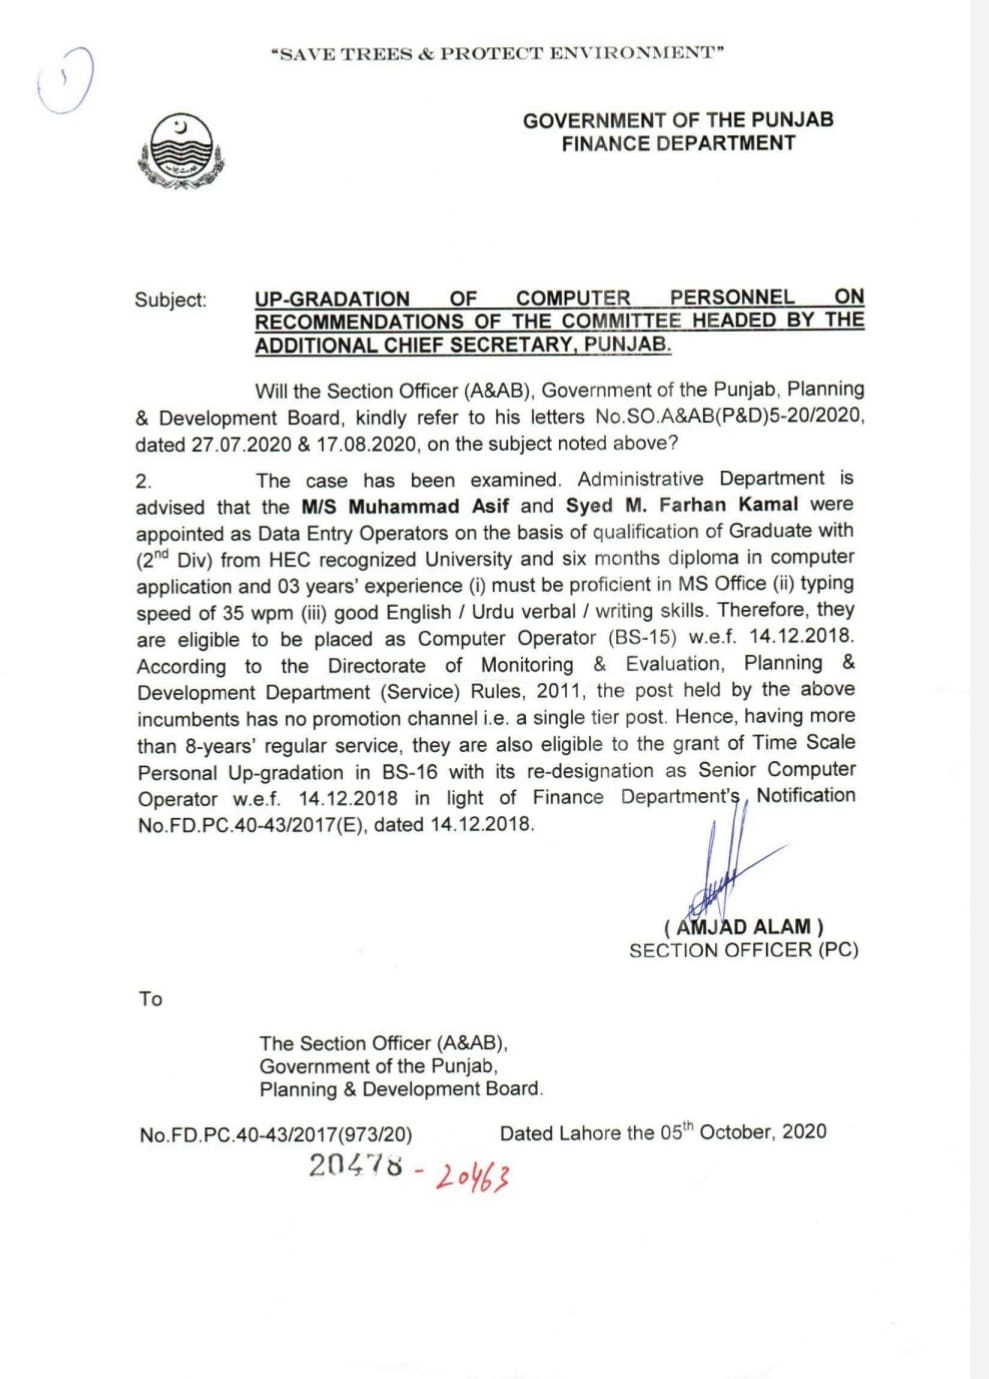 Notification of Up-gradation of Computer Personnel on Recommendations of Committee